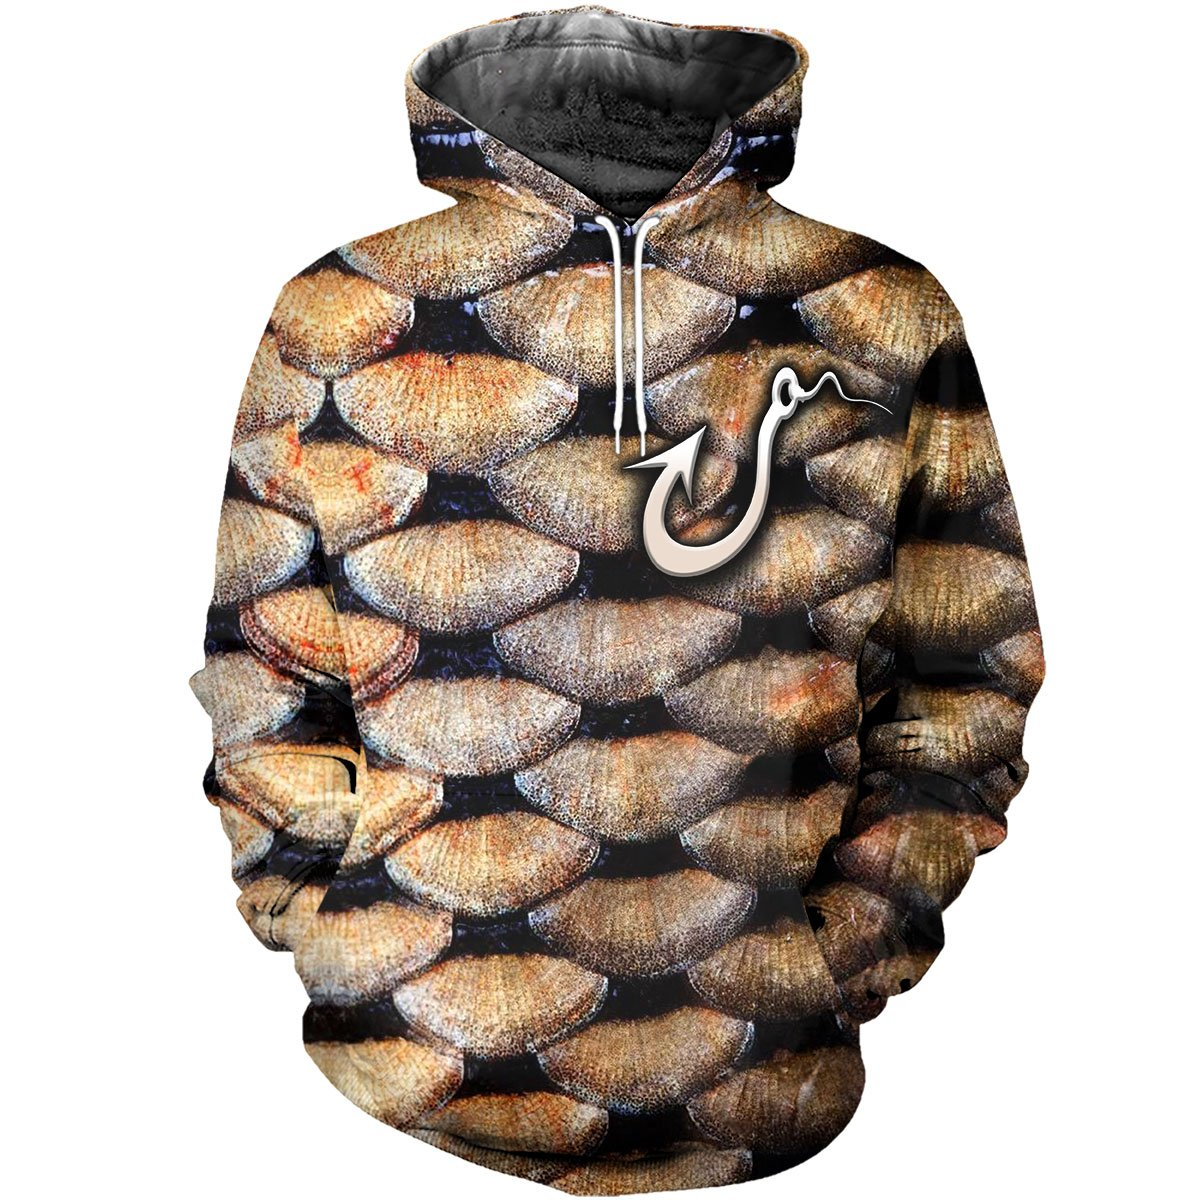 3D All Over Printed Gold Carp Scales Shirts and Shorts